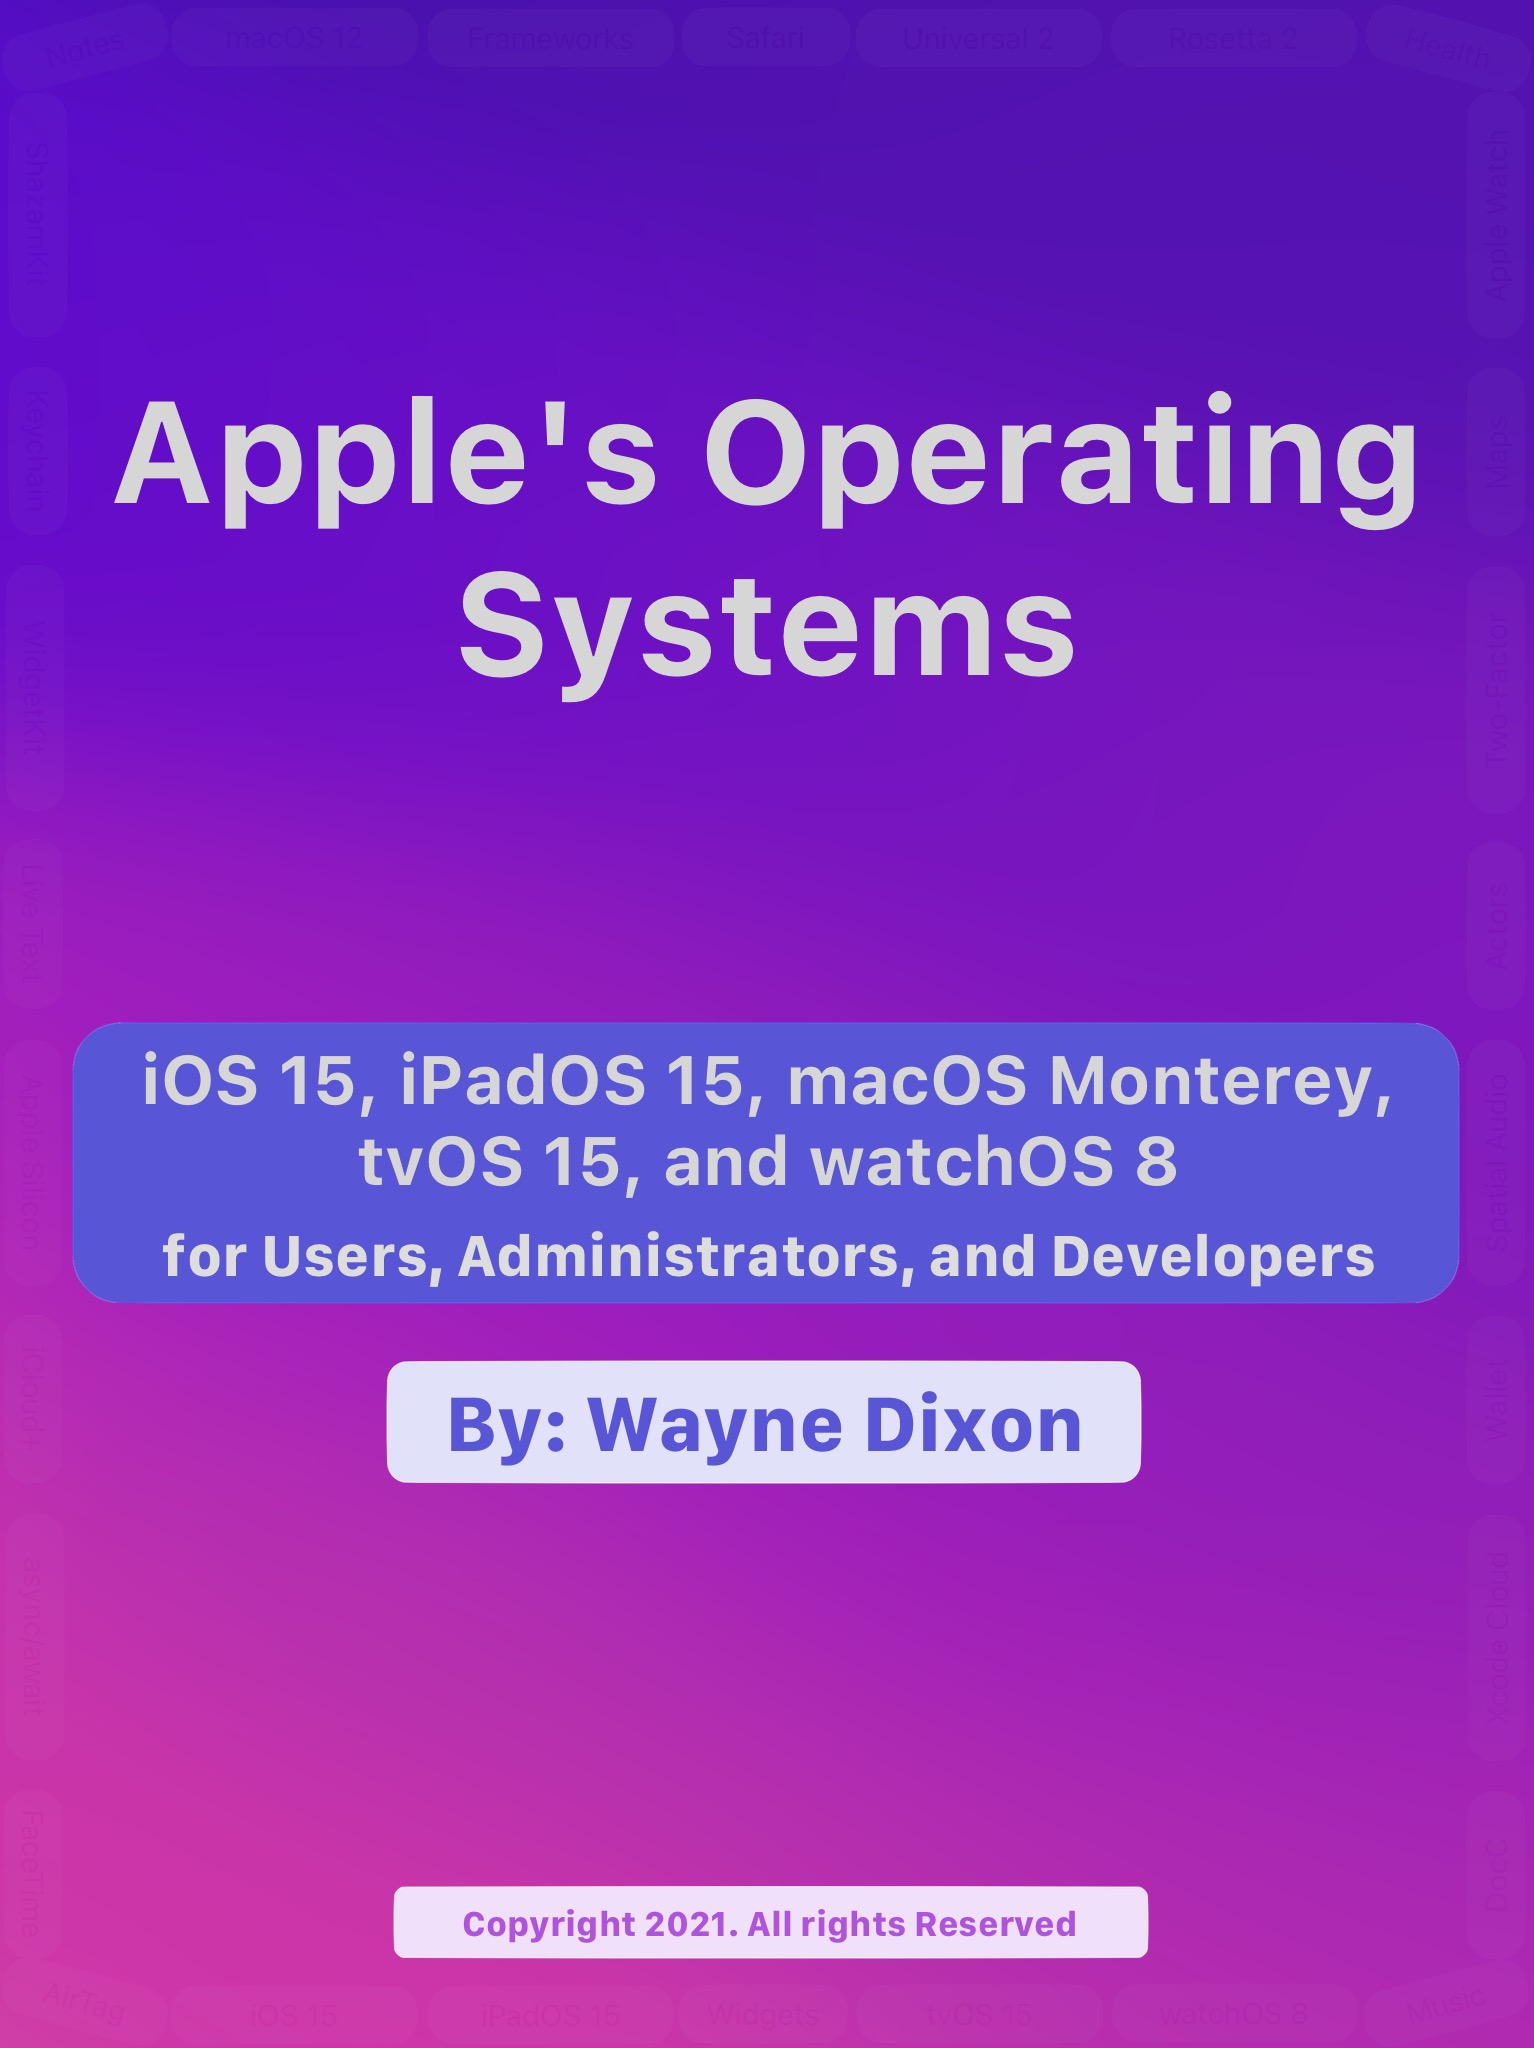 Book Cover for iOS 15, iPadOS 15, macOS Monterey, tvOS 15 and watchOS 8 for Users, Administrators, and Developers